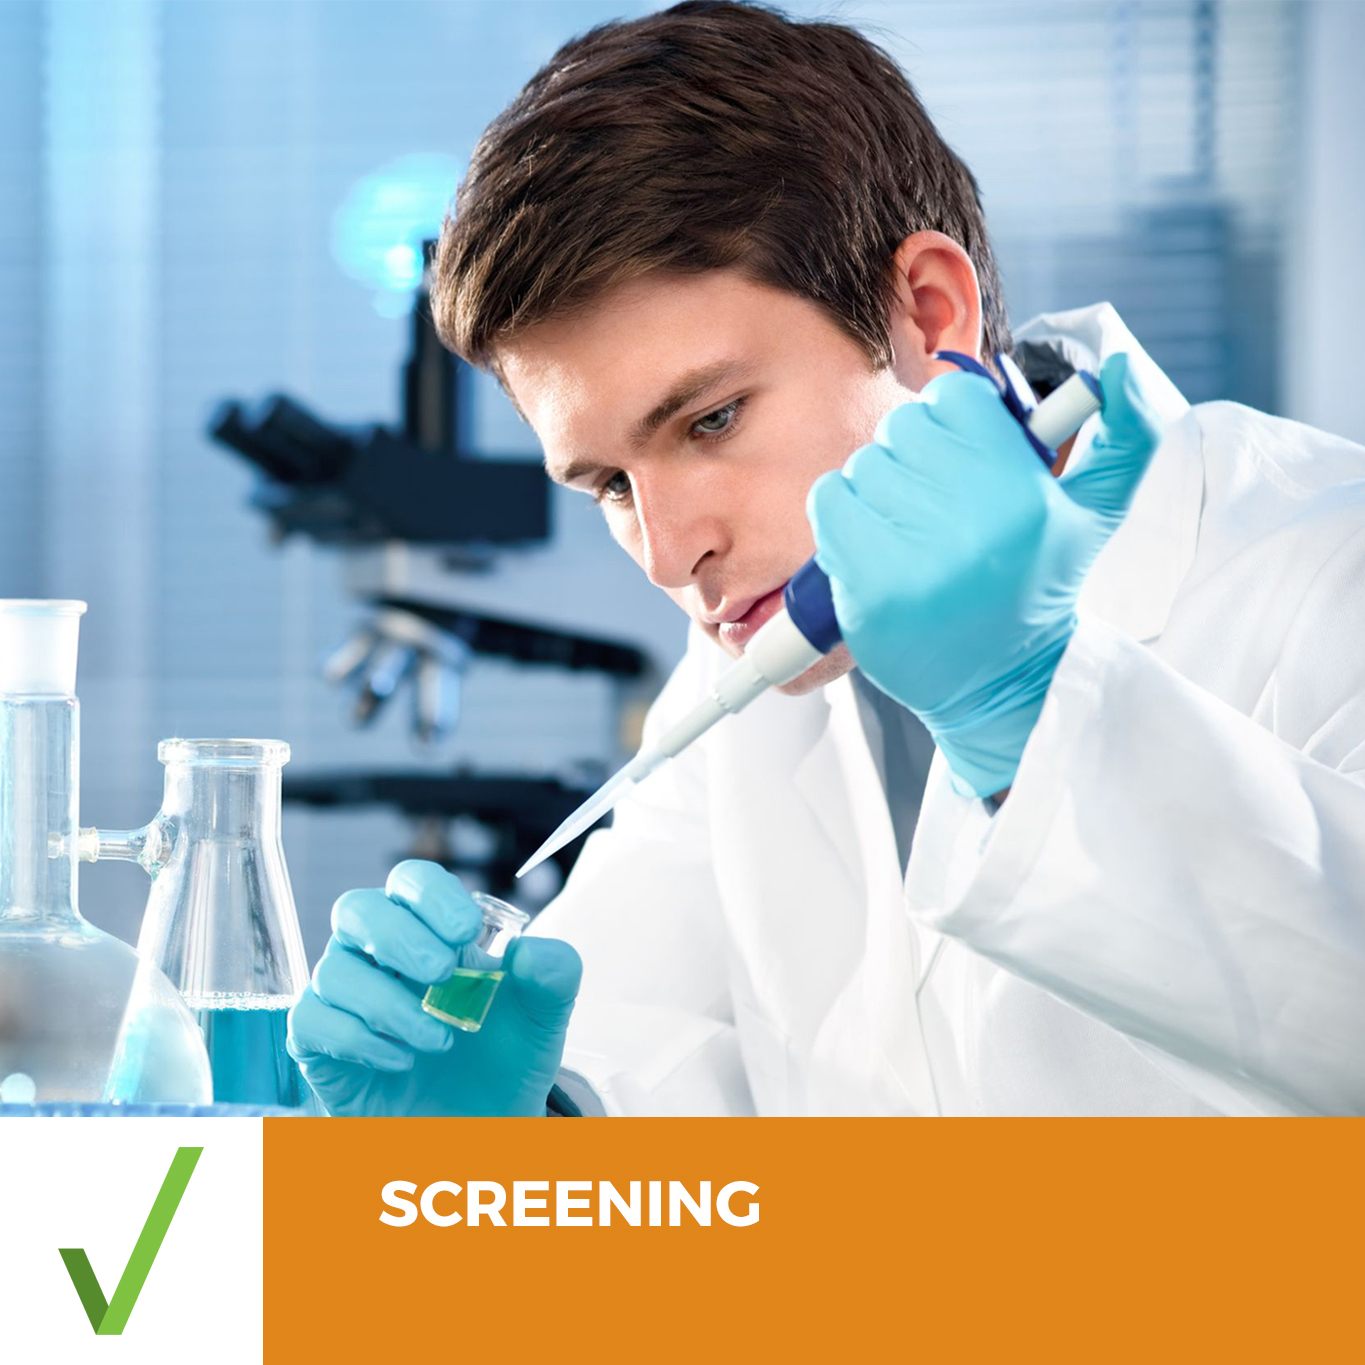 AllClear SCREENING